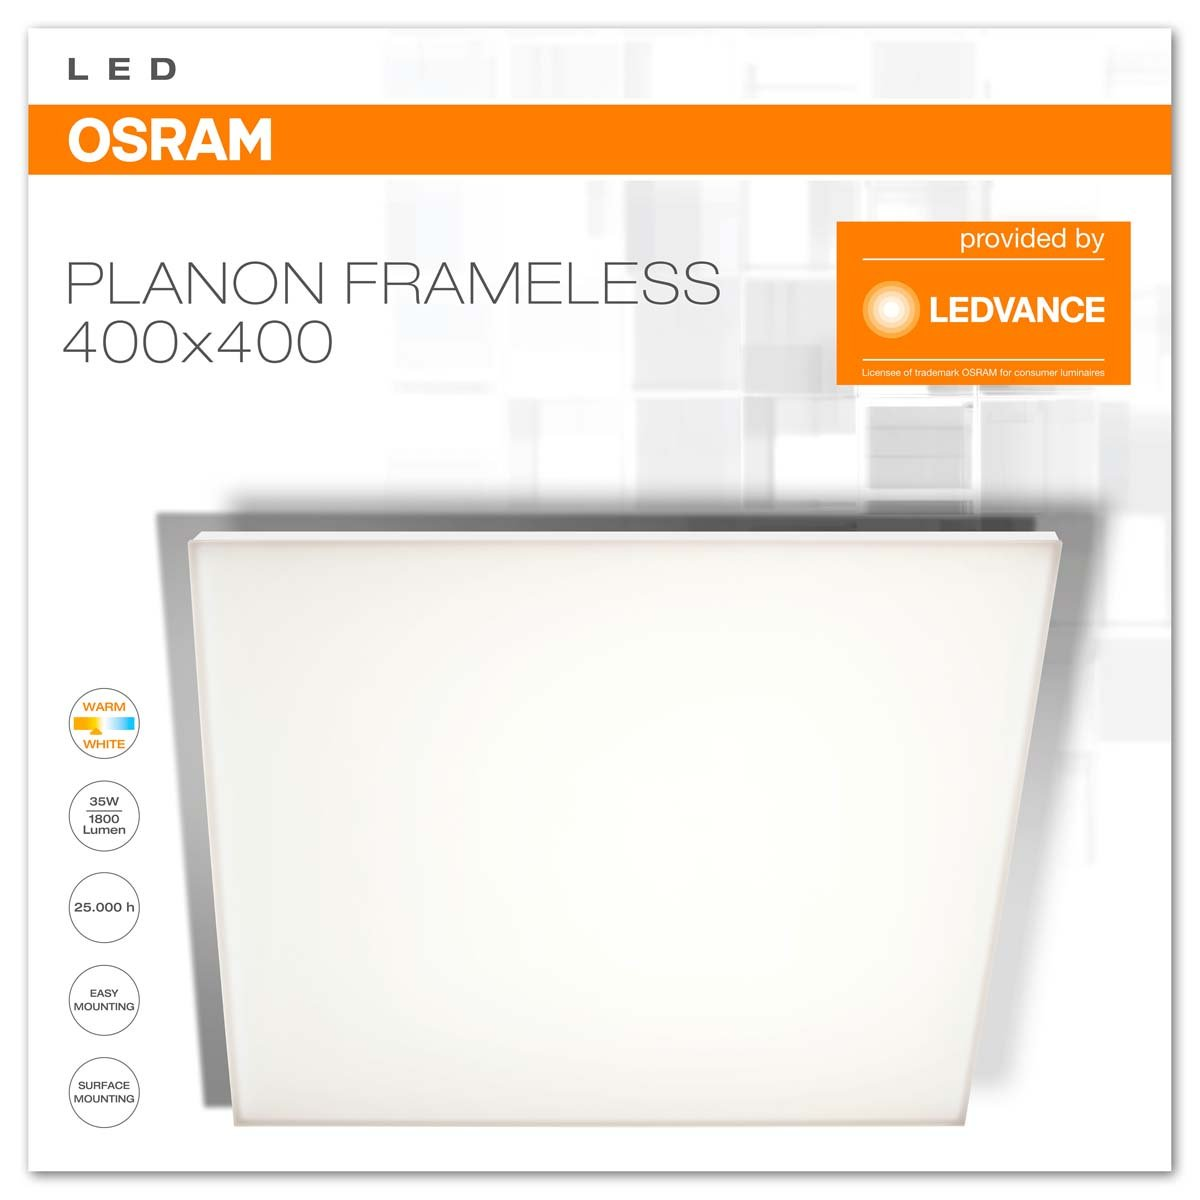 35W 1900lm 60x30cm Dimmable Blanc Chaud//Froid t/él/écommande incluse OSRAM Montage en surface Applique // Plafonnier Ultra Plat LED Planon Frameless